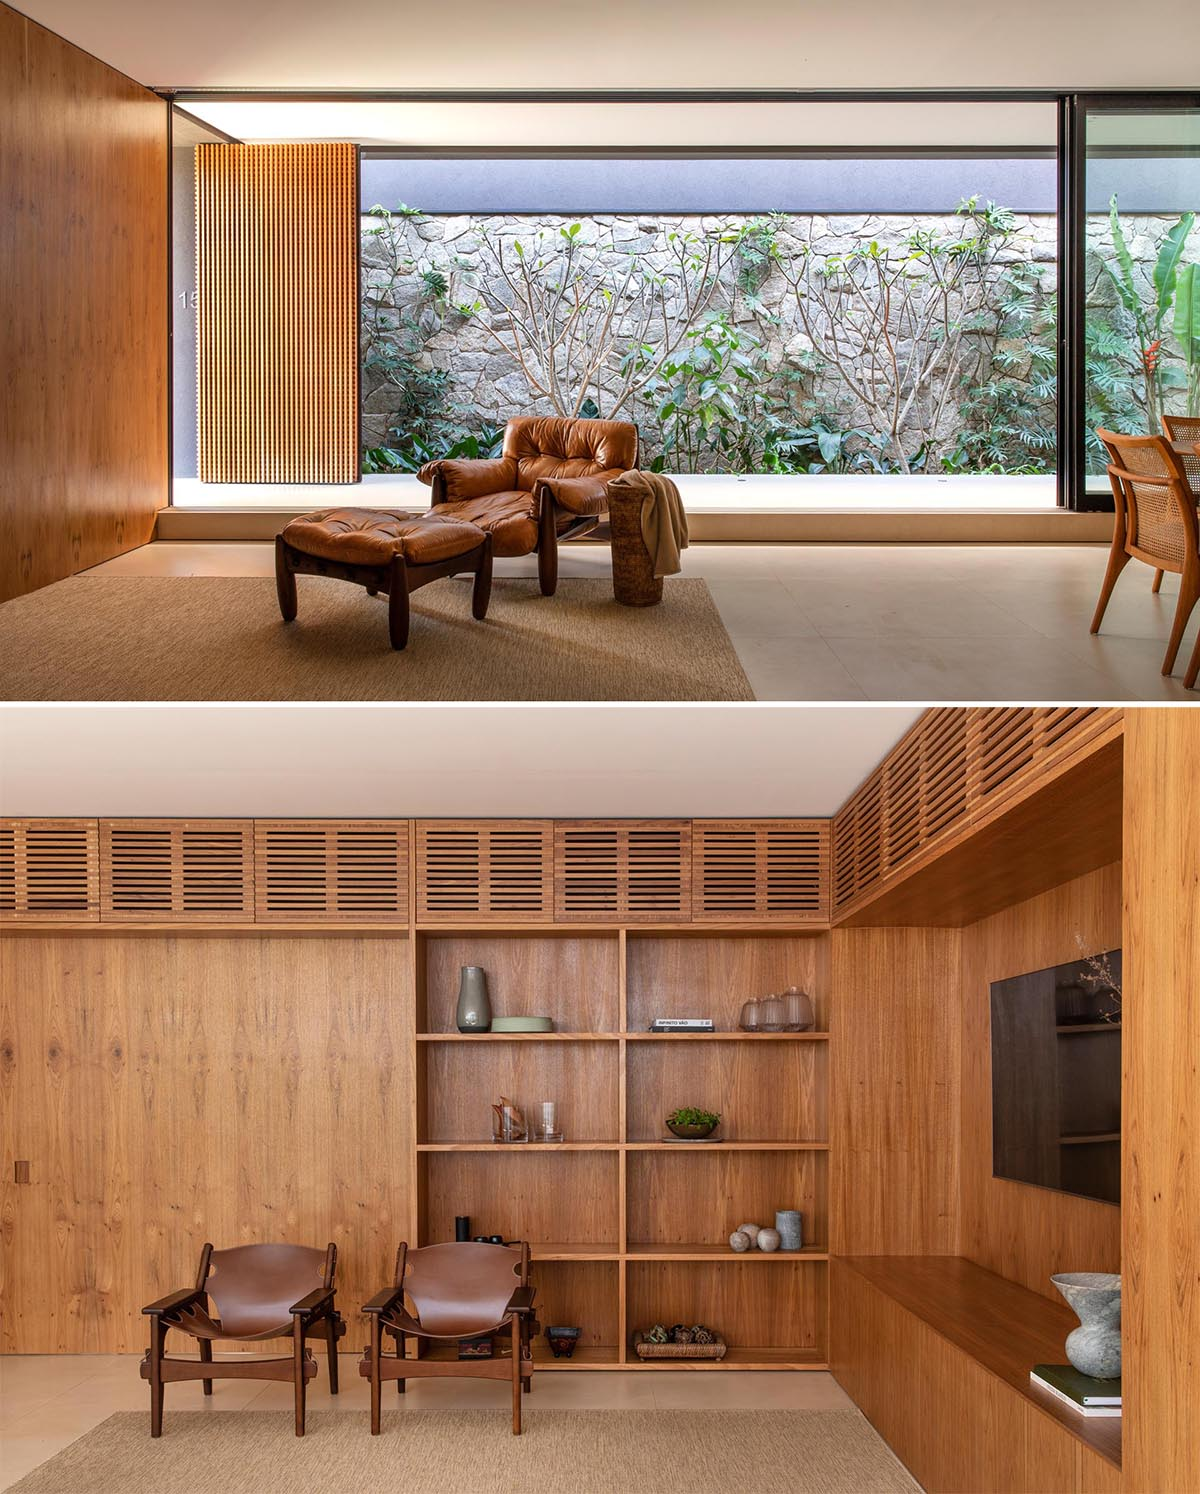 A modern living room with wood walls and built-in shelving.